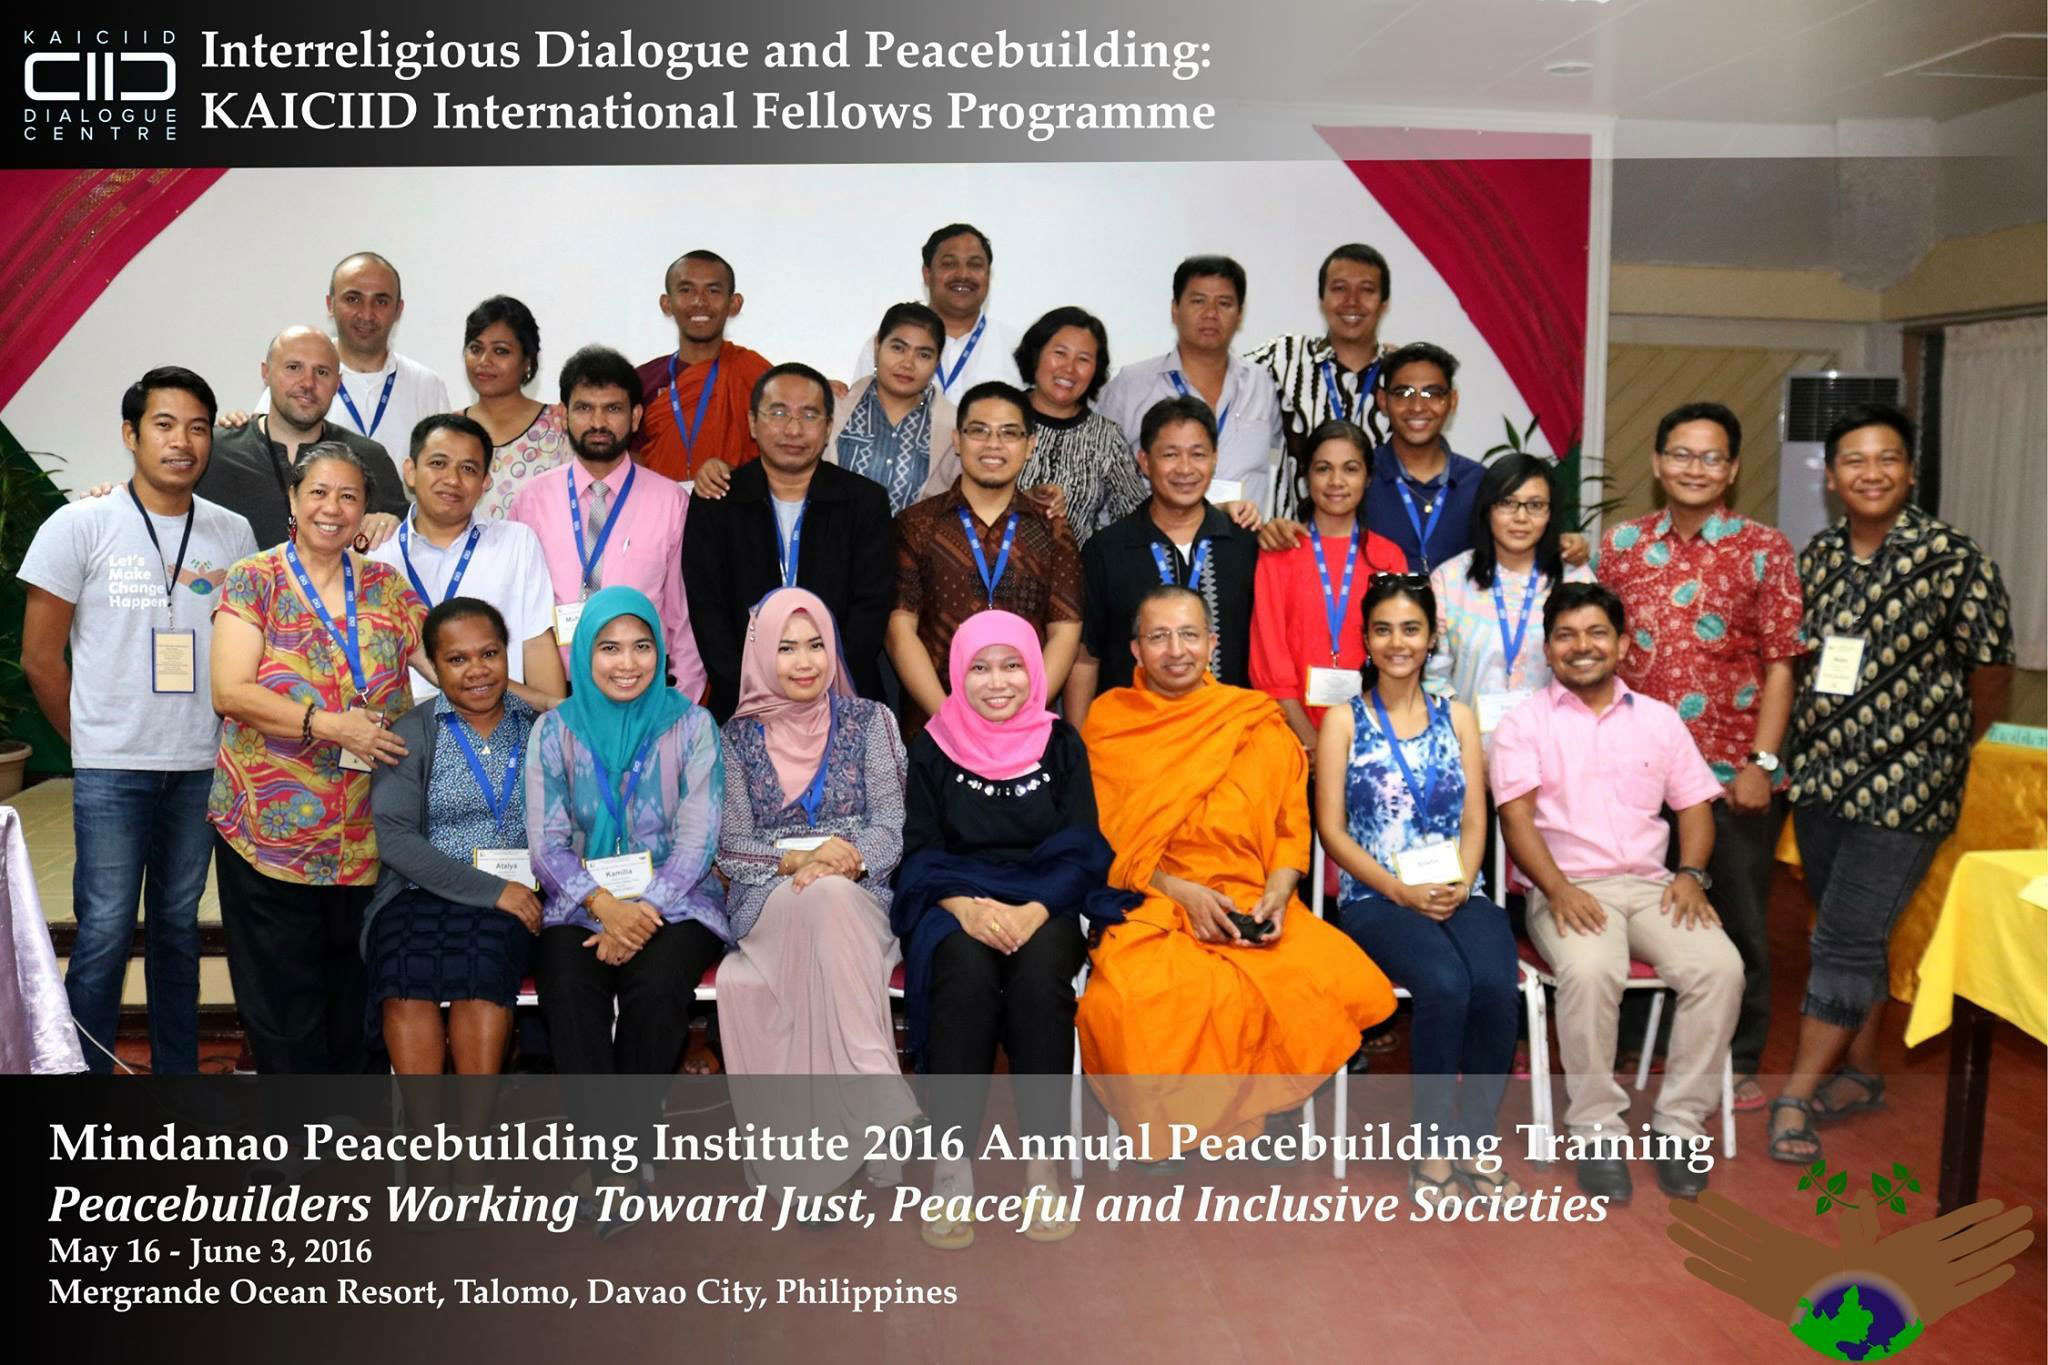 KAICIID's Southeast Asia fellows programme in the Philippines